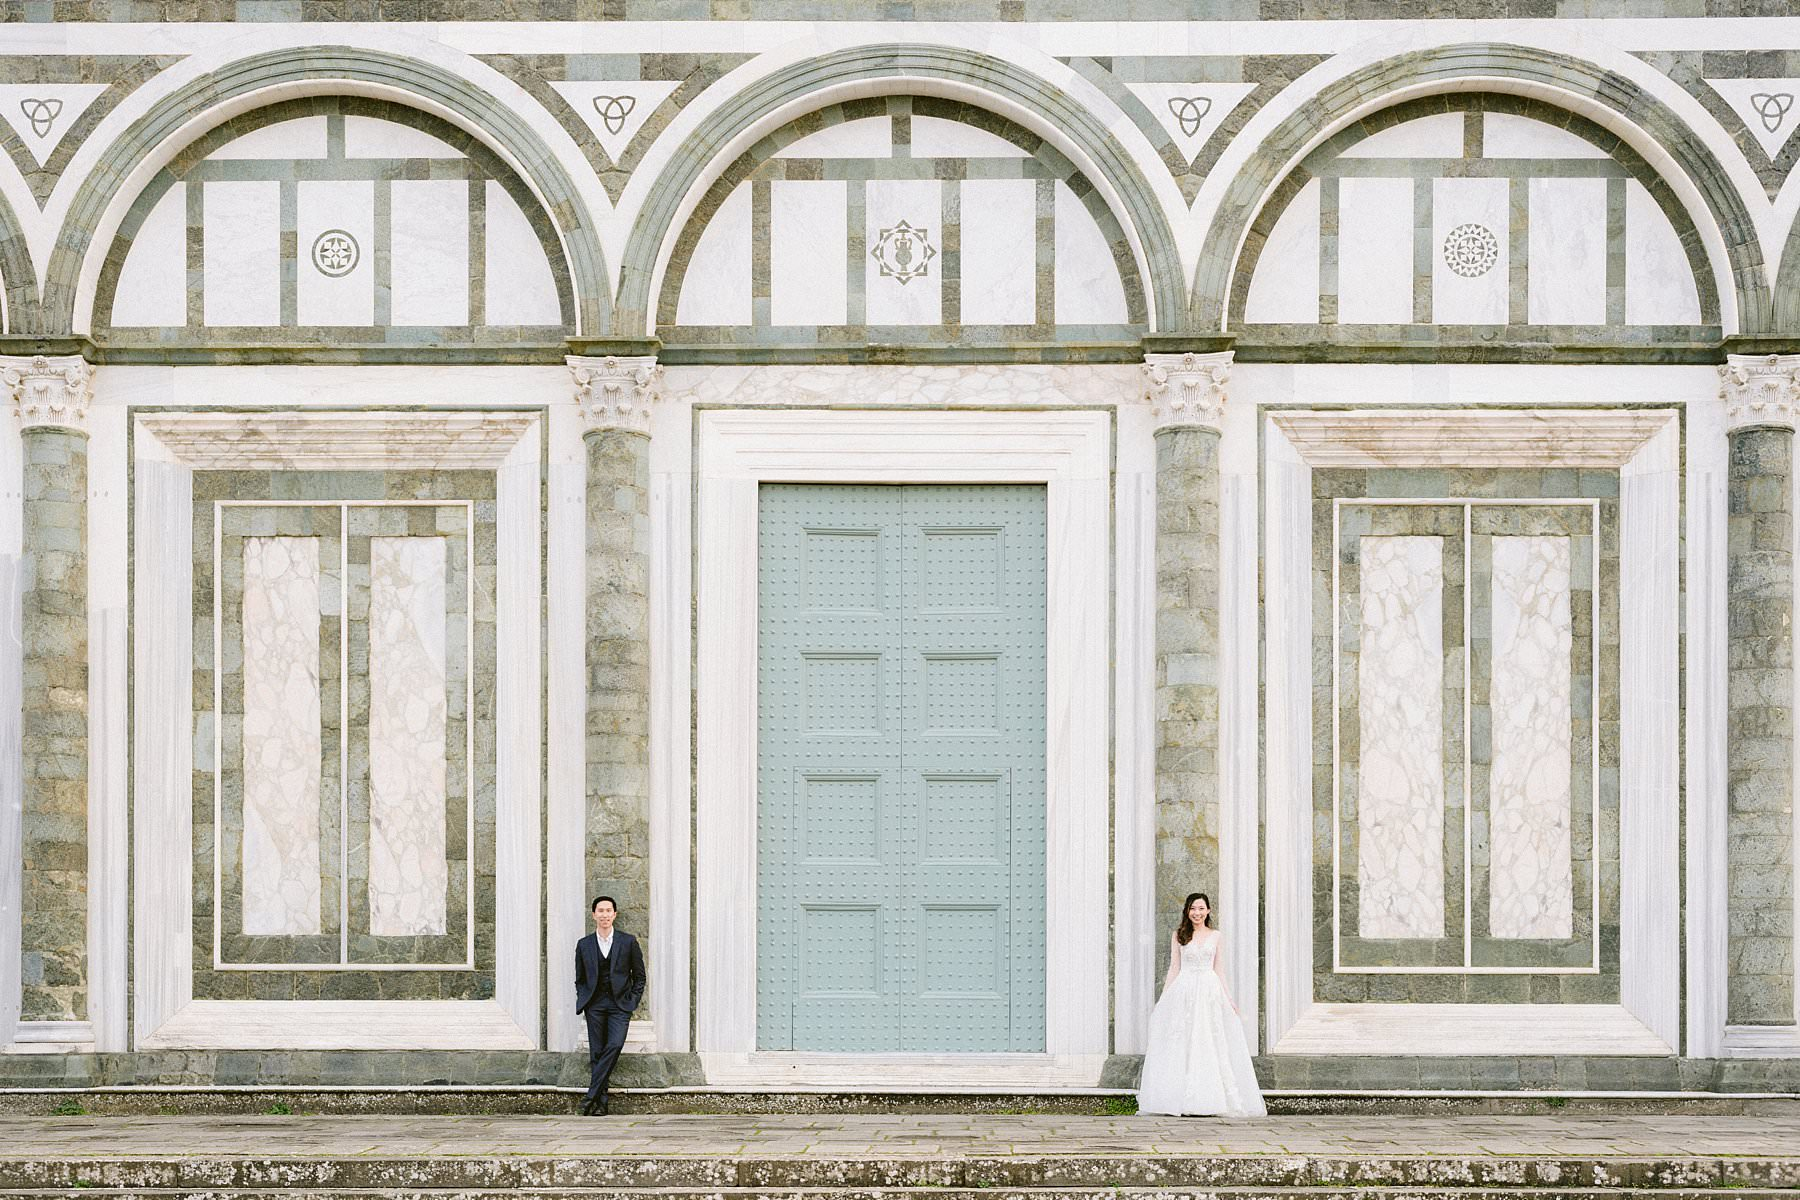 Romantic and unforgettable couple photo shoot for a special honeymoon in Florence during coronavirus pandemic